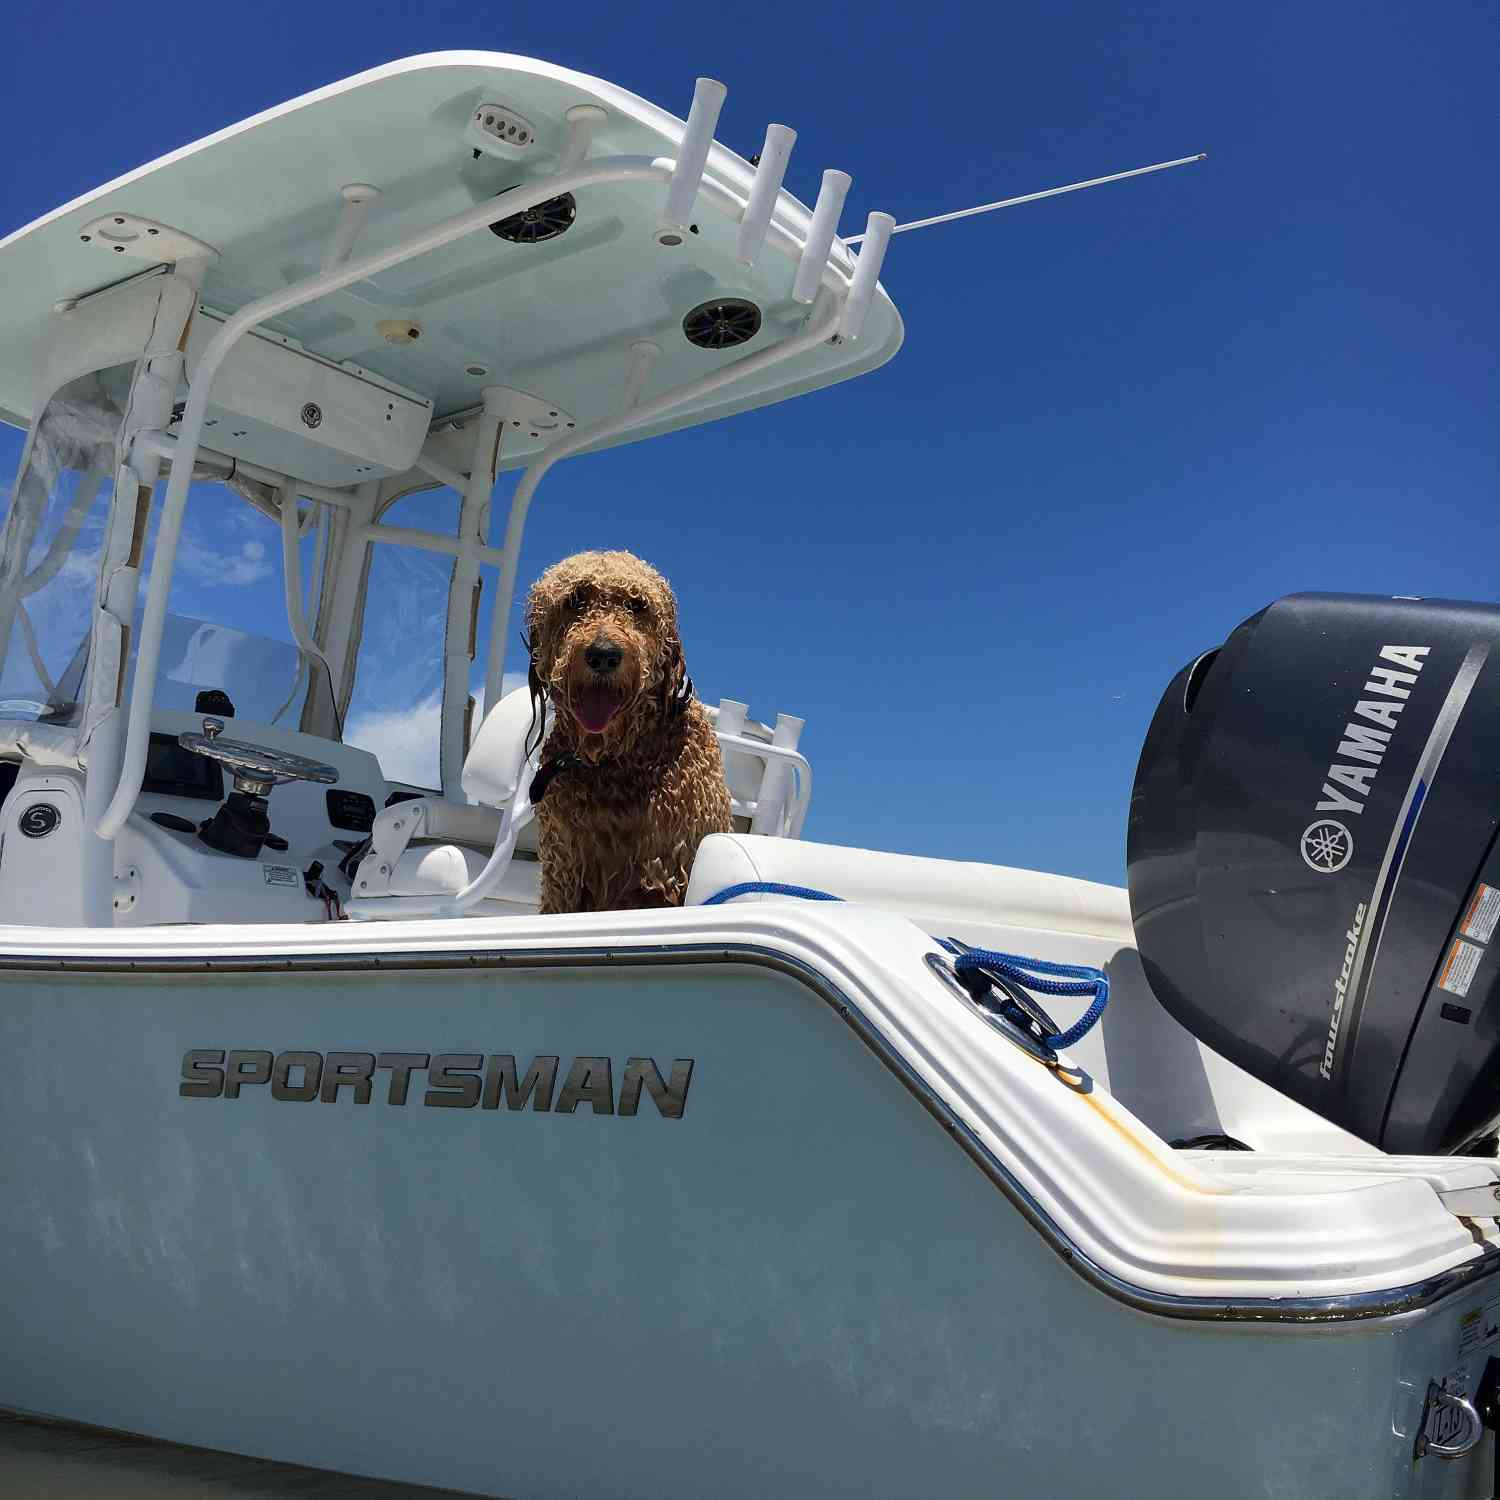 Title: Beau loves his Sportsman - On board their Sportsman Heritage 211 Center Console - Location: Wassaw Island, Georgia. Participating in the Photo Contest #SportsmanAugust2018